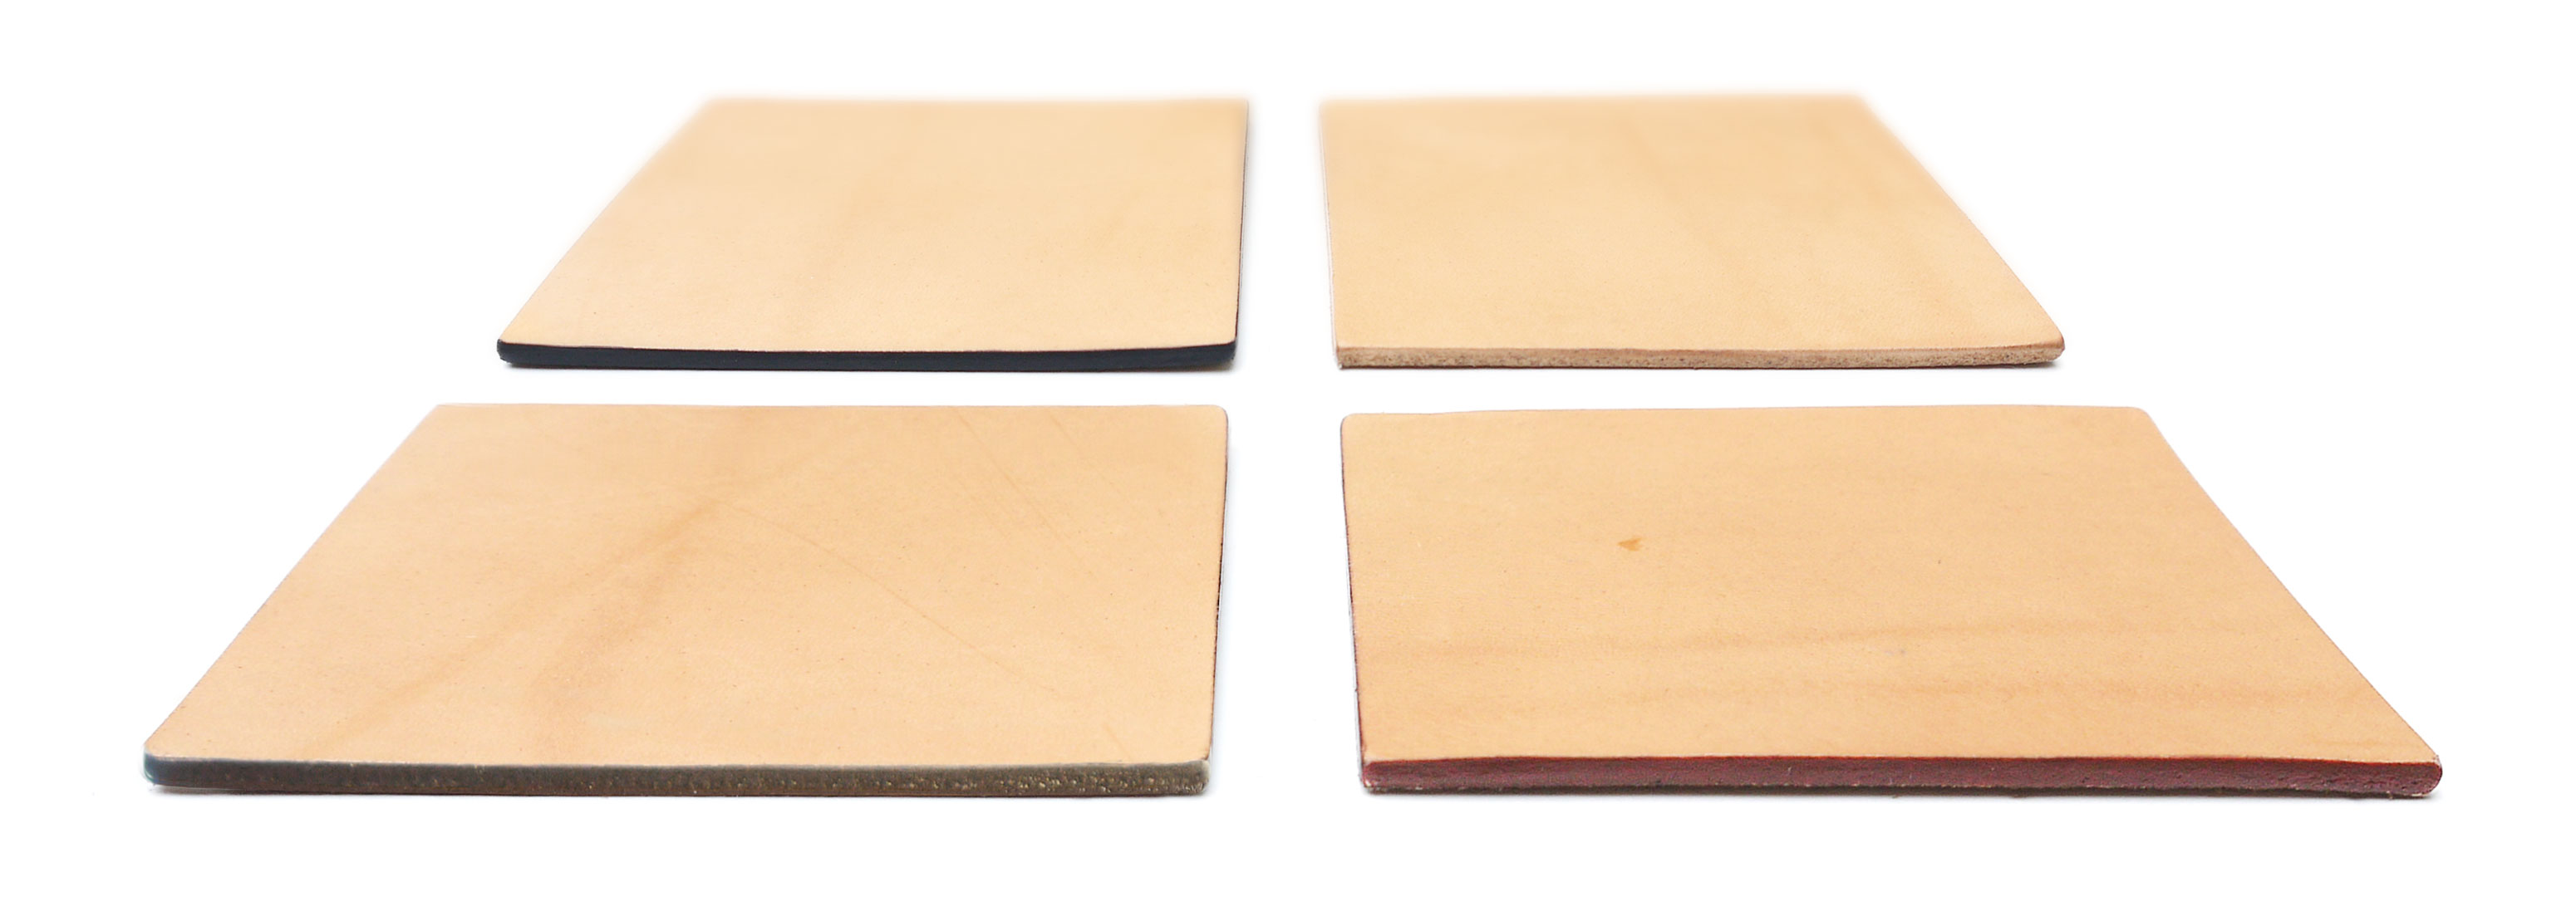 Leather Edge Color Guide for handmade bags.